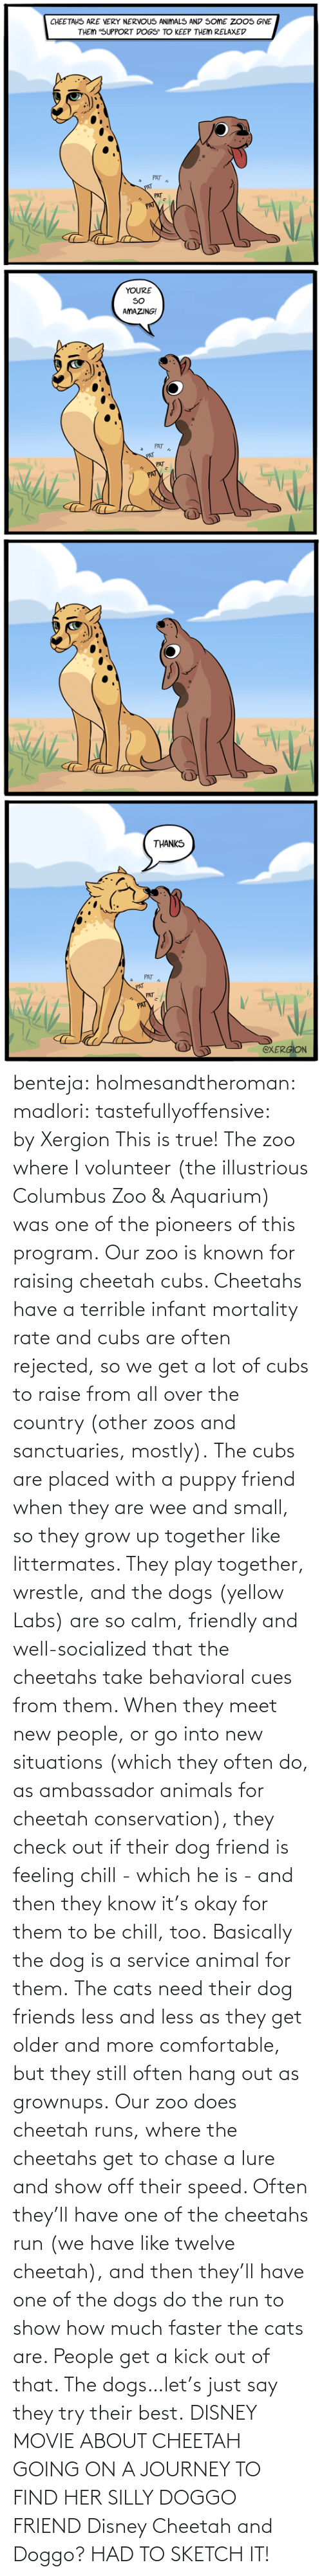 Cats Are: benteja:  holmesandtheroman:  madlori:  tastefullyoffensive: by Xergion This is true! The zoo where I volunteer (the illustrious Columbus Zoo & Aquarium) was one of the pioneers of this program. Our zoo is known for raising cheetah cubs. Cheetahs have a terrible infant mortality rate and cubs are often rejected, so we get a lot of cubs to raise from all over the country (other zoos and sanctuaries, mostly). The cubs are placed with a puppy friend when they are wee and small, so they grow up together like littermates. They play together, wrestle, and the dogs (yellow Labs) are so calm, friendly and well-socialized that the cheetahs take behavioral cues from them. When they meet new people, or go into new situations (which they often do, as ambassador animals for cheetah conservation), they check out if their dog friend is feeling chill - which he is - and then they know it's okay for them to be chill, too. Basically the dog is a service animal for them. The cats need their dog friends less and less as they get older and more comfortable, but they still often hang out as grownups. Our zoo does cheetah runs, where the cheetahs get to chase a lure and show off their speed. Often they'll have one of the cheetahs run (we have like twelve cheetah), and then they'll have one of the dogs do the run to show how much faster the cats are. People get a kick out of that. The dogs…let's just say they try their best.   DISNEY MOVIE ABOUT CHEETAH GOING ON A JOURNEY TO FIND HER SILLY DOGGO FRIEND  Disney Cheetah and Doggo? HAD TO SKETCH IT!